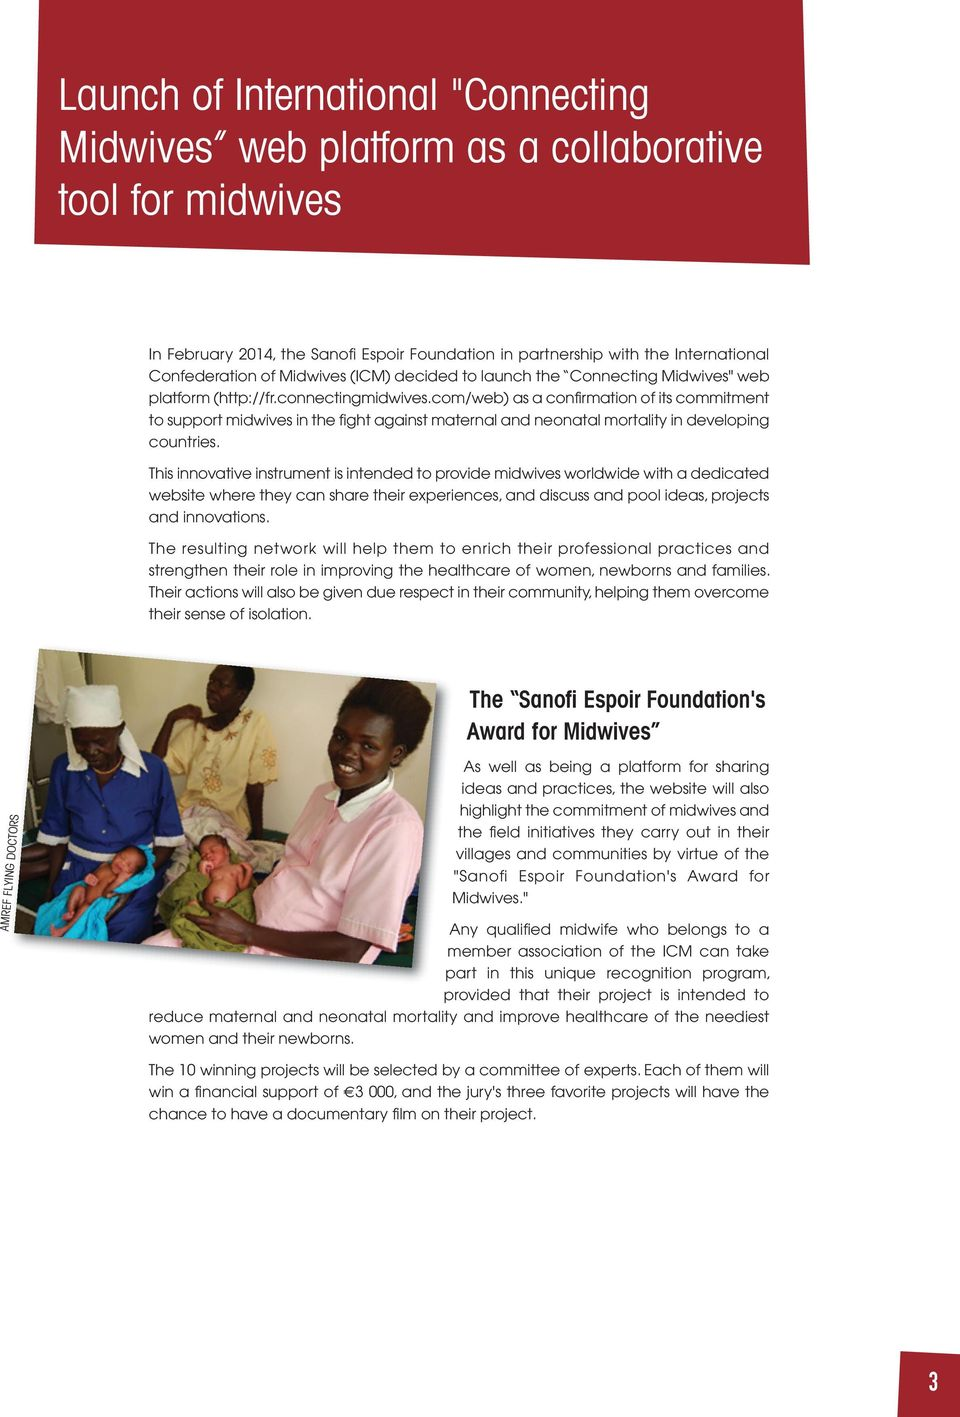 com/web) as a confirmation of its commitment to support midwives in the fight against maternal and neonatal mortality in developing countries.